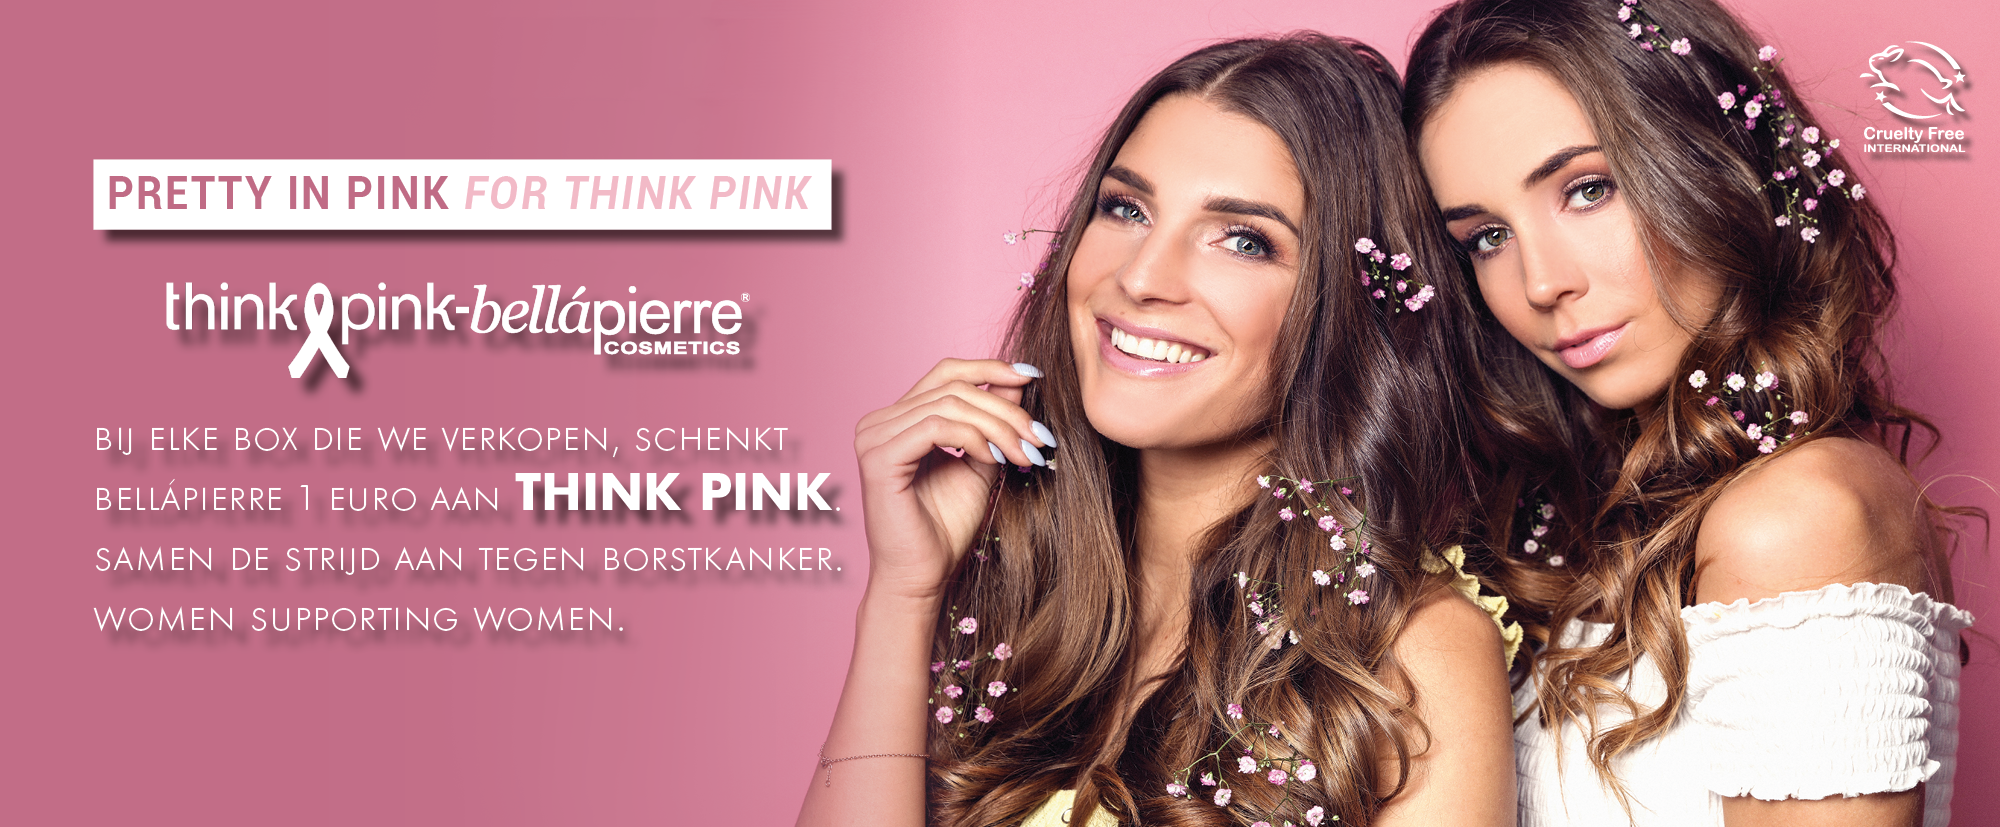 BELLAPIERRE PRETTY IN PINK FOR THINK PINK